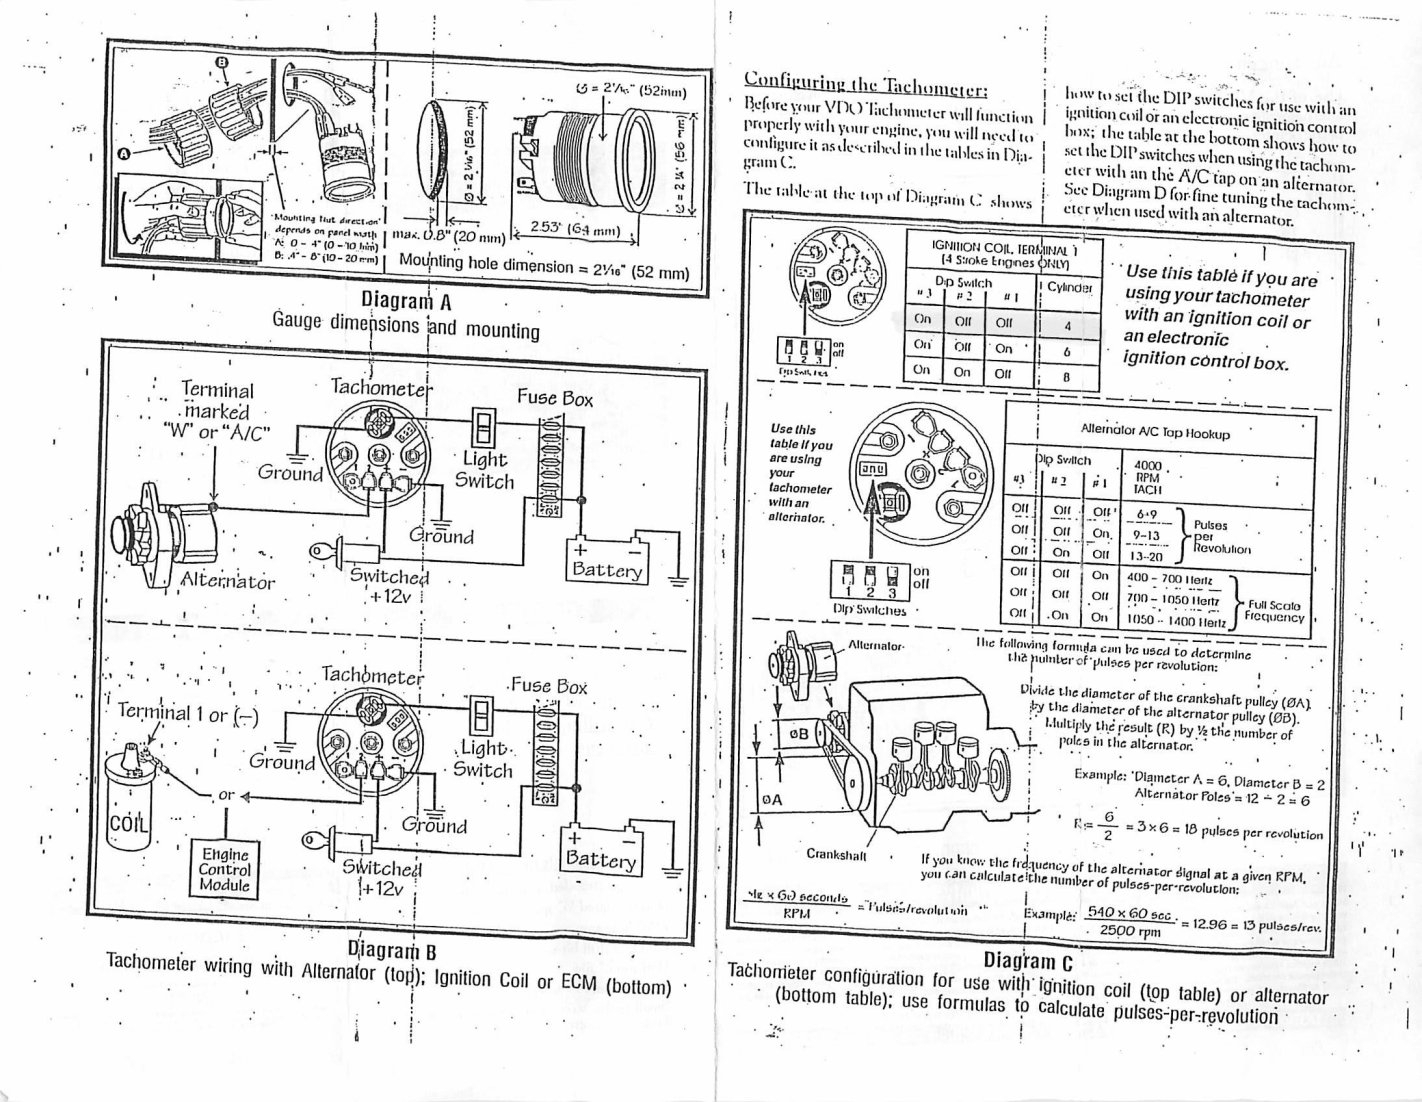 356 Tach Wiring | Wiring Diagram Gas Club Car Wiring Diagram Tachometer on